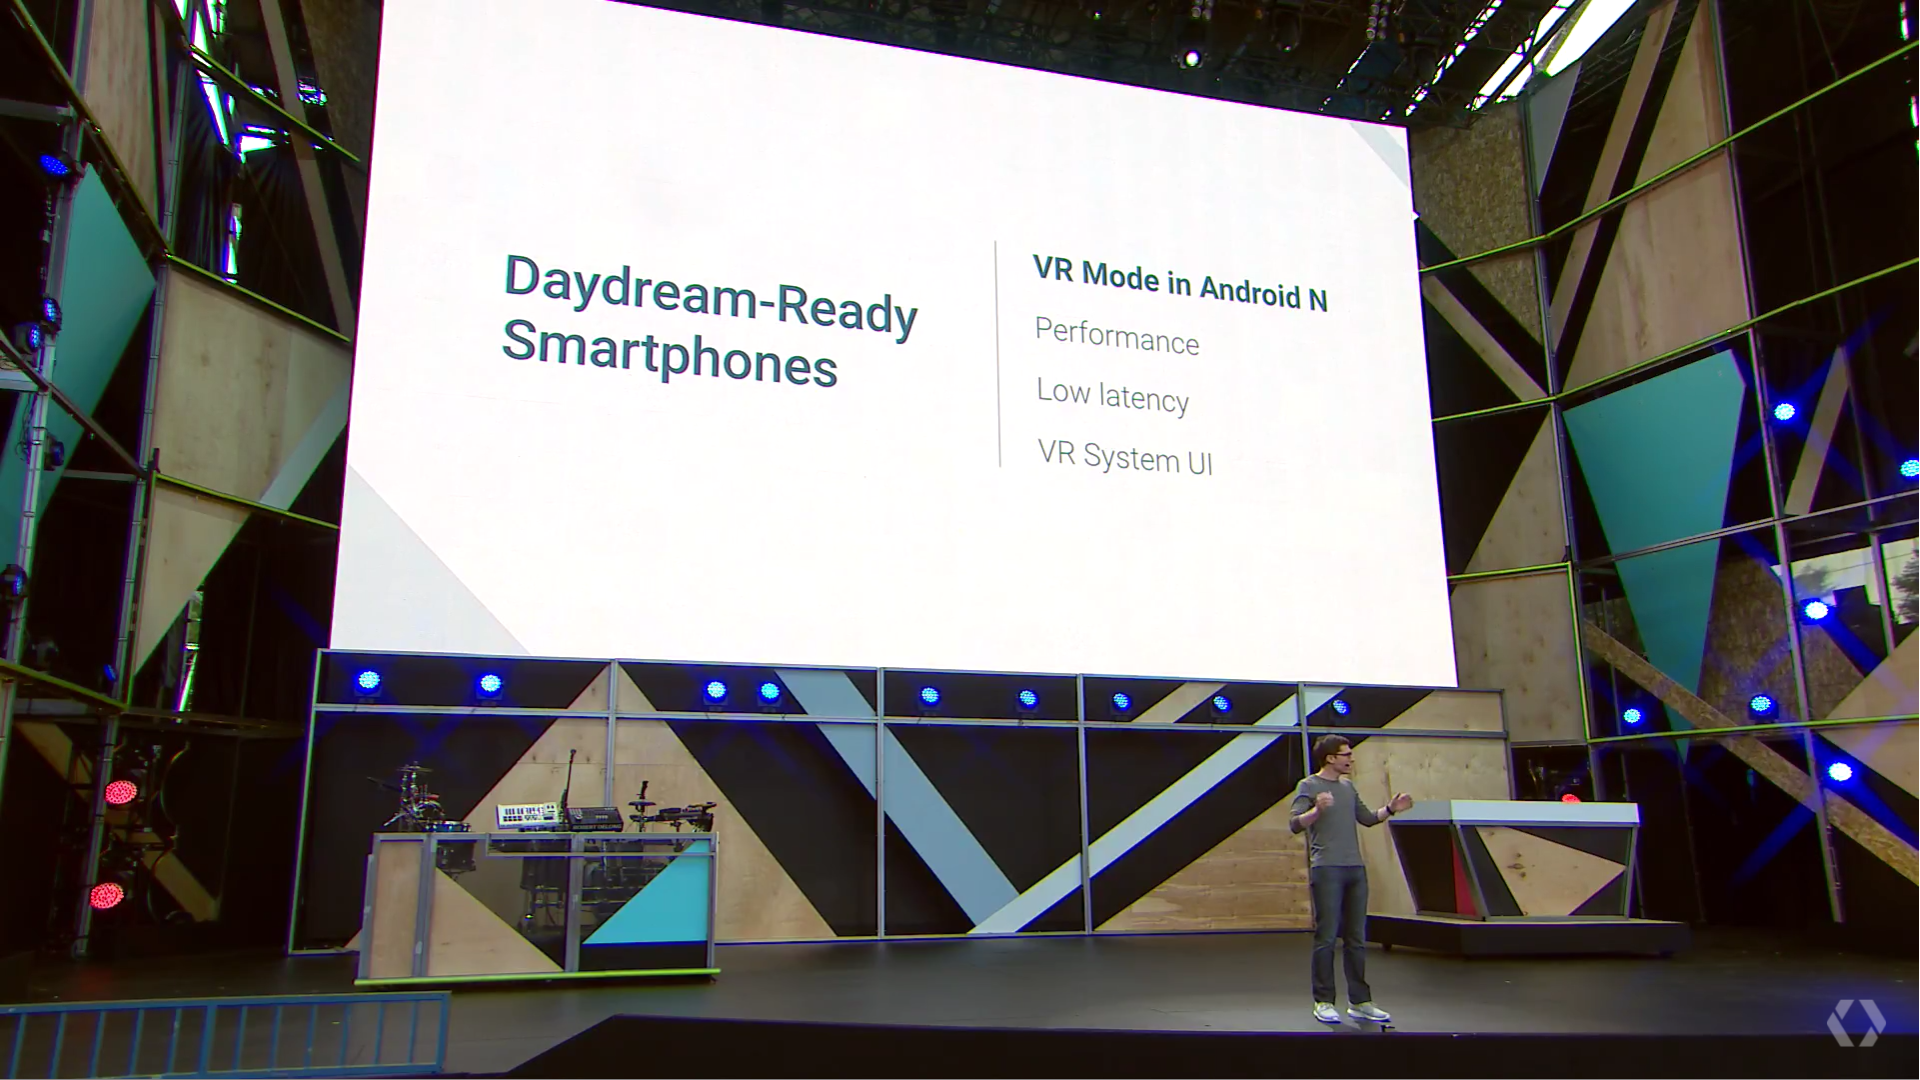 Google announces 'Daydream' platform for mobile VR